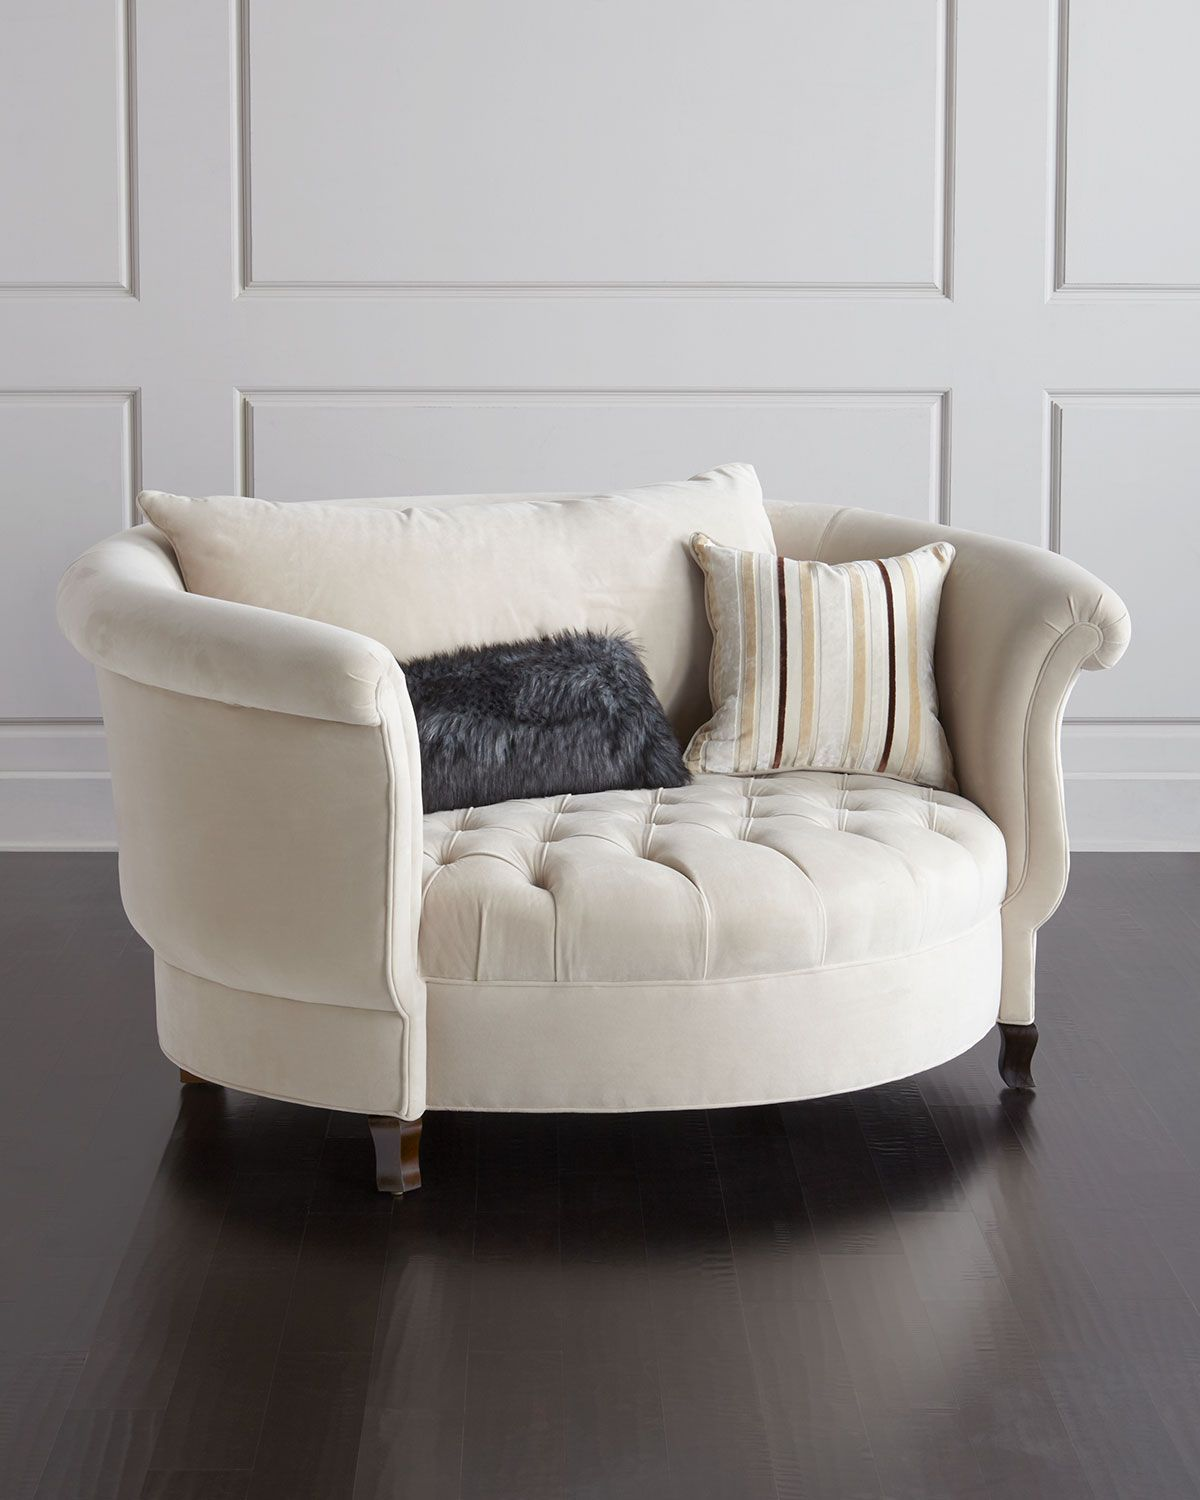 harlow ivory cuddle chair furniture u003e chairs cuddle chair rh pinterest com